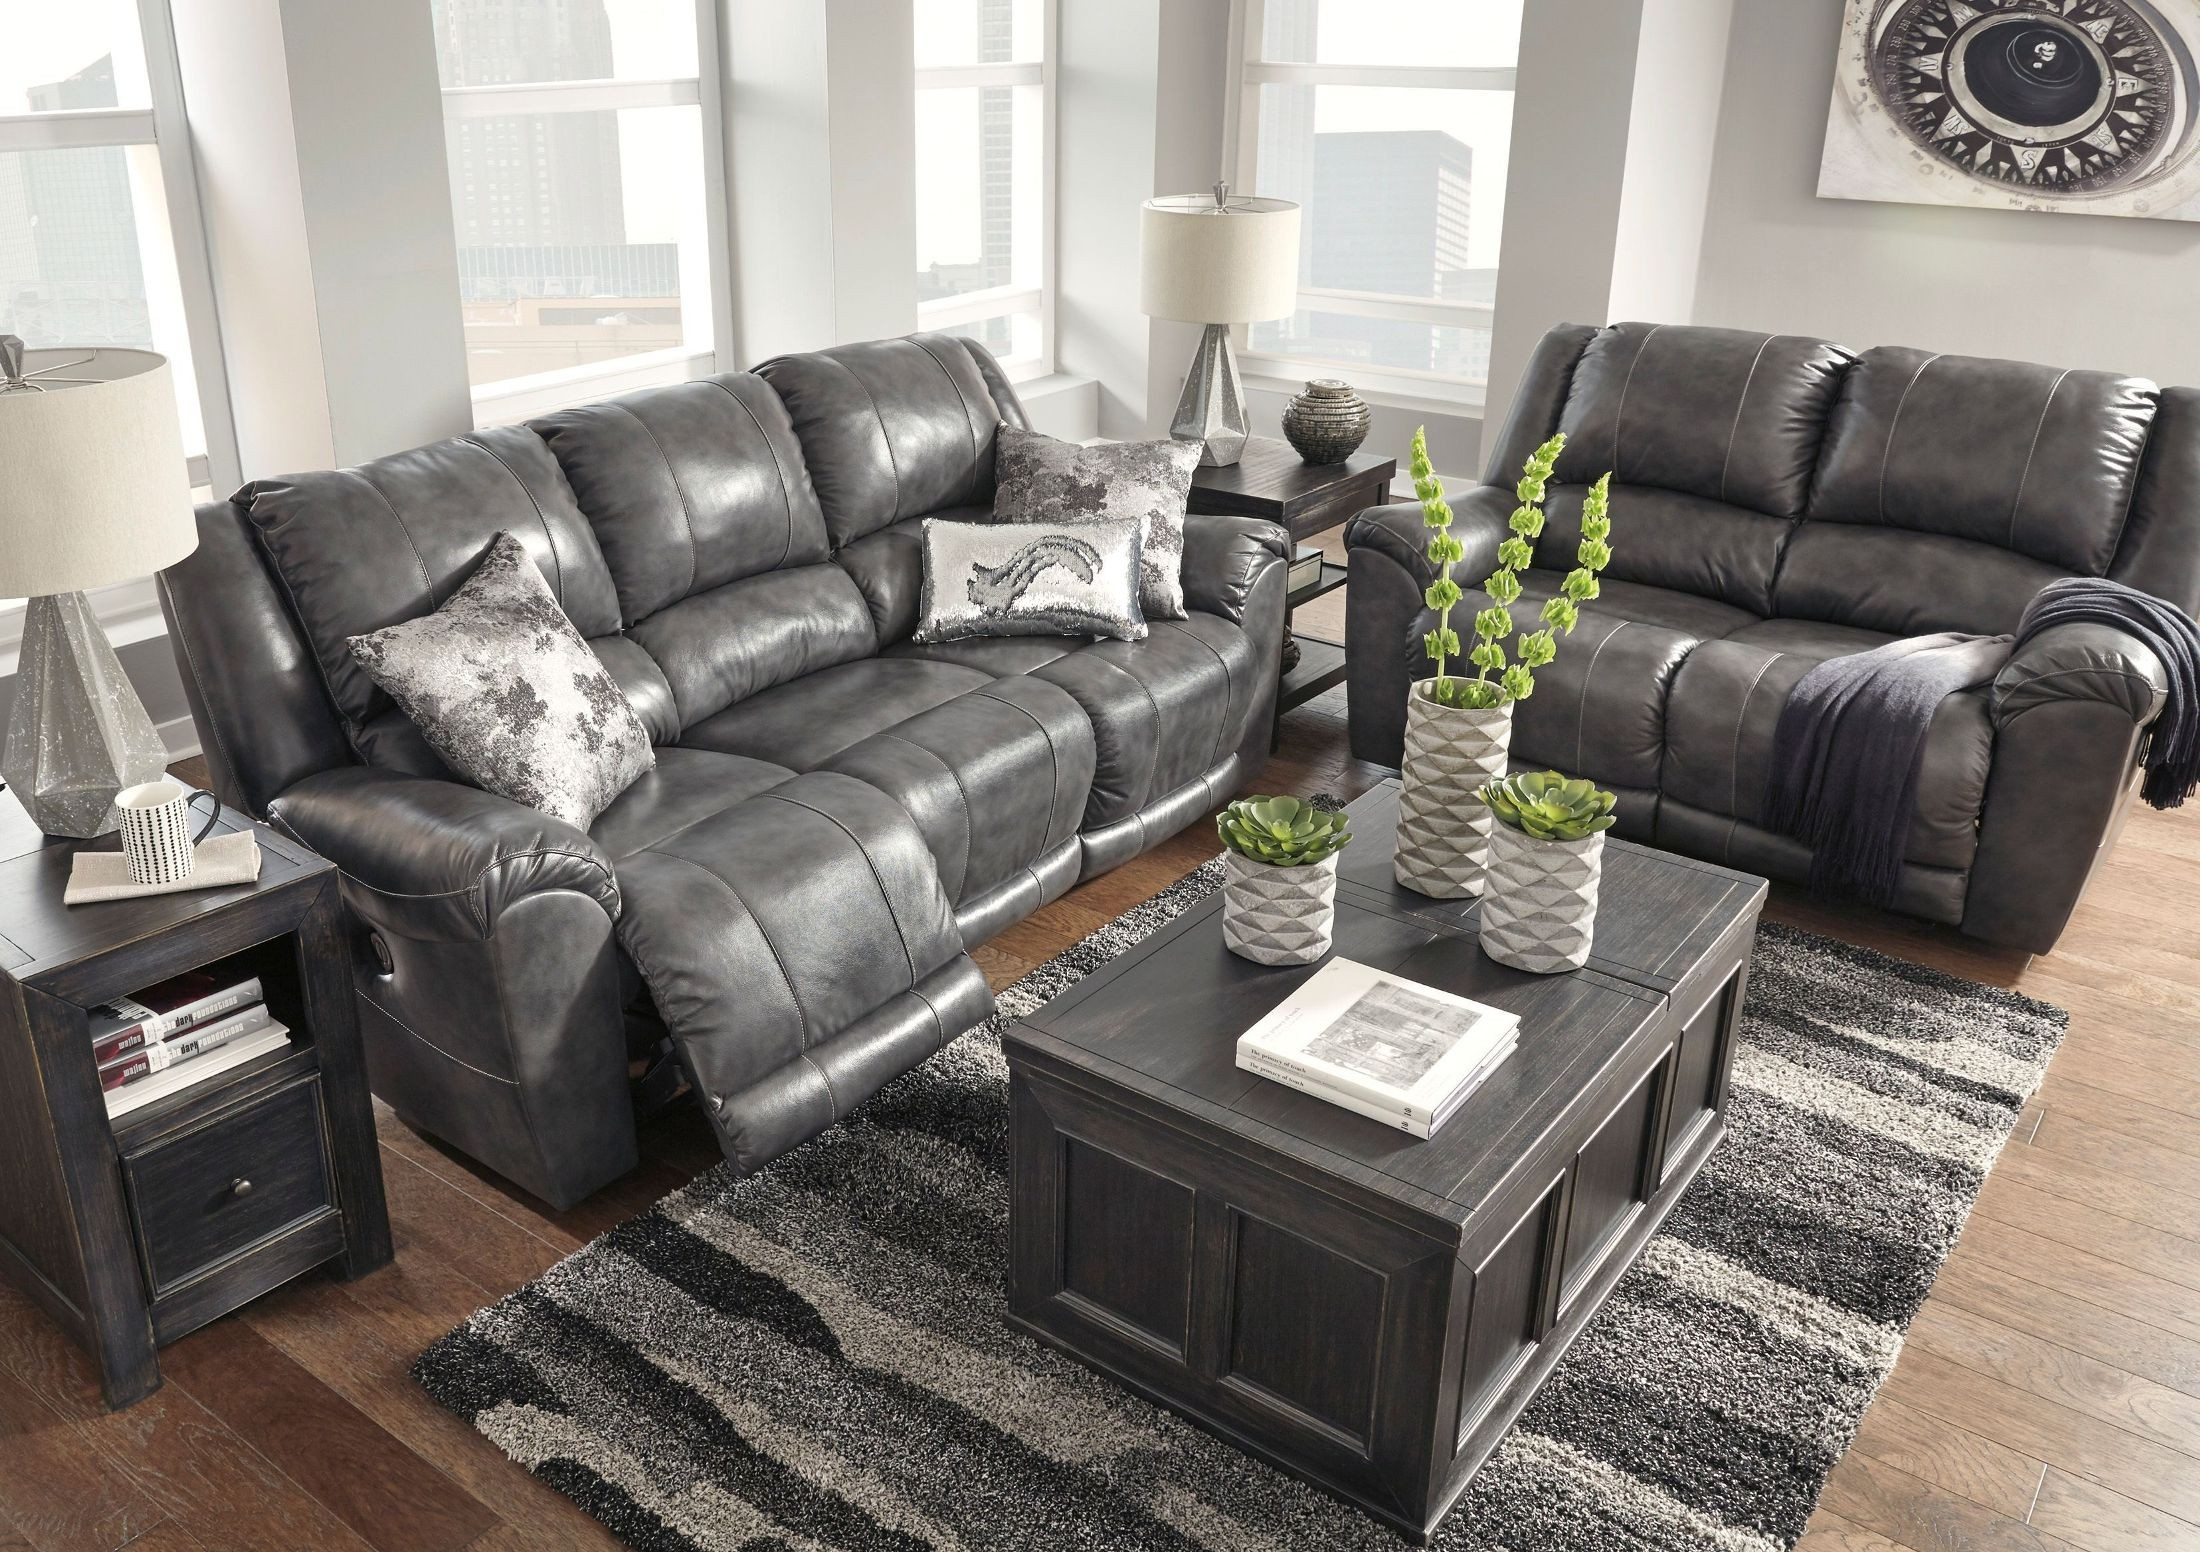 Persiphone Charcoal Reclining Living Room Set From Ashley Coleman Furniture